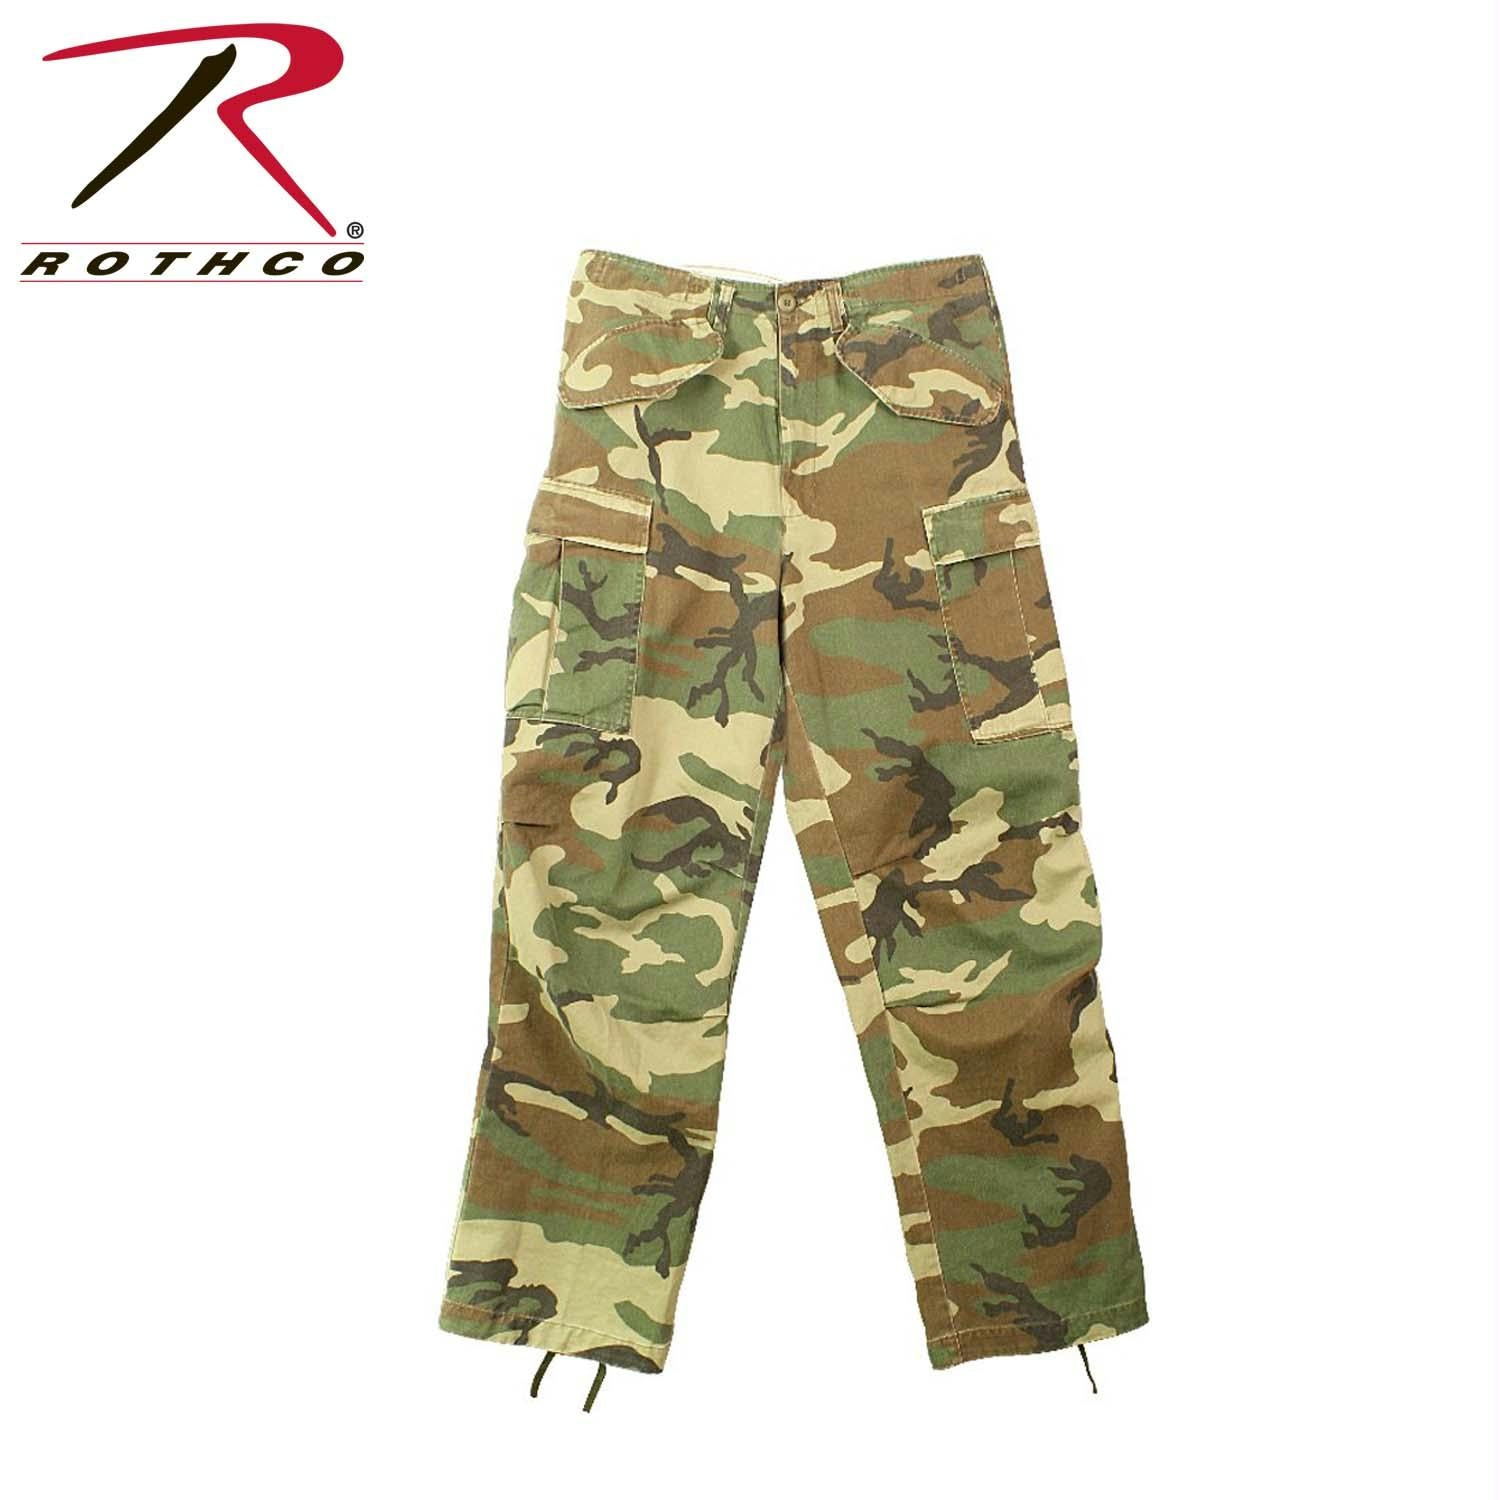 Rothco Vintage M-65 Field Pant - Woodland Camo / 3XL